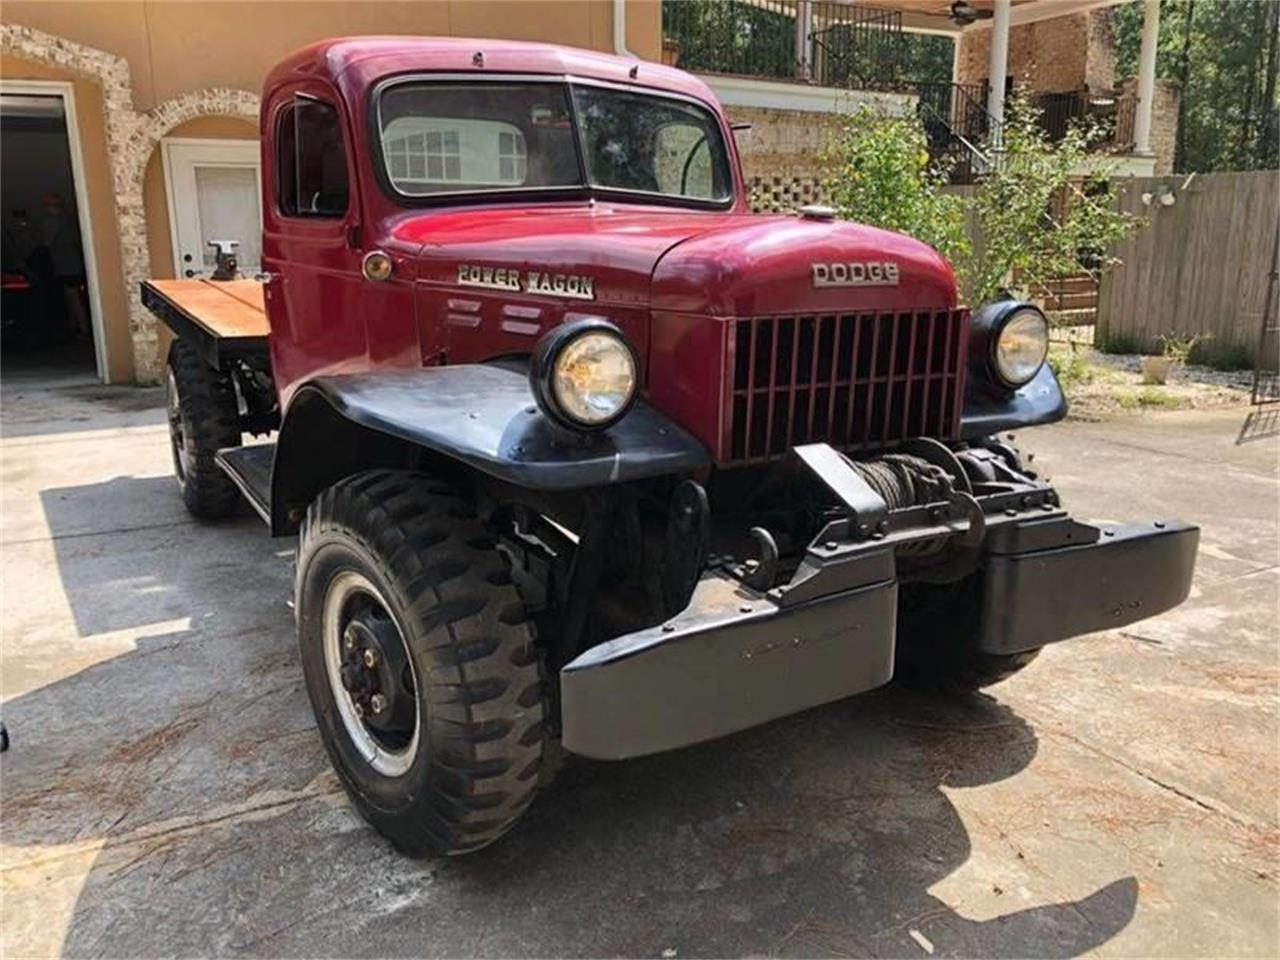 1948 Dodge Power Wagon For Sale In Long Island Ny Classiccarsbay Com